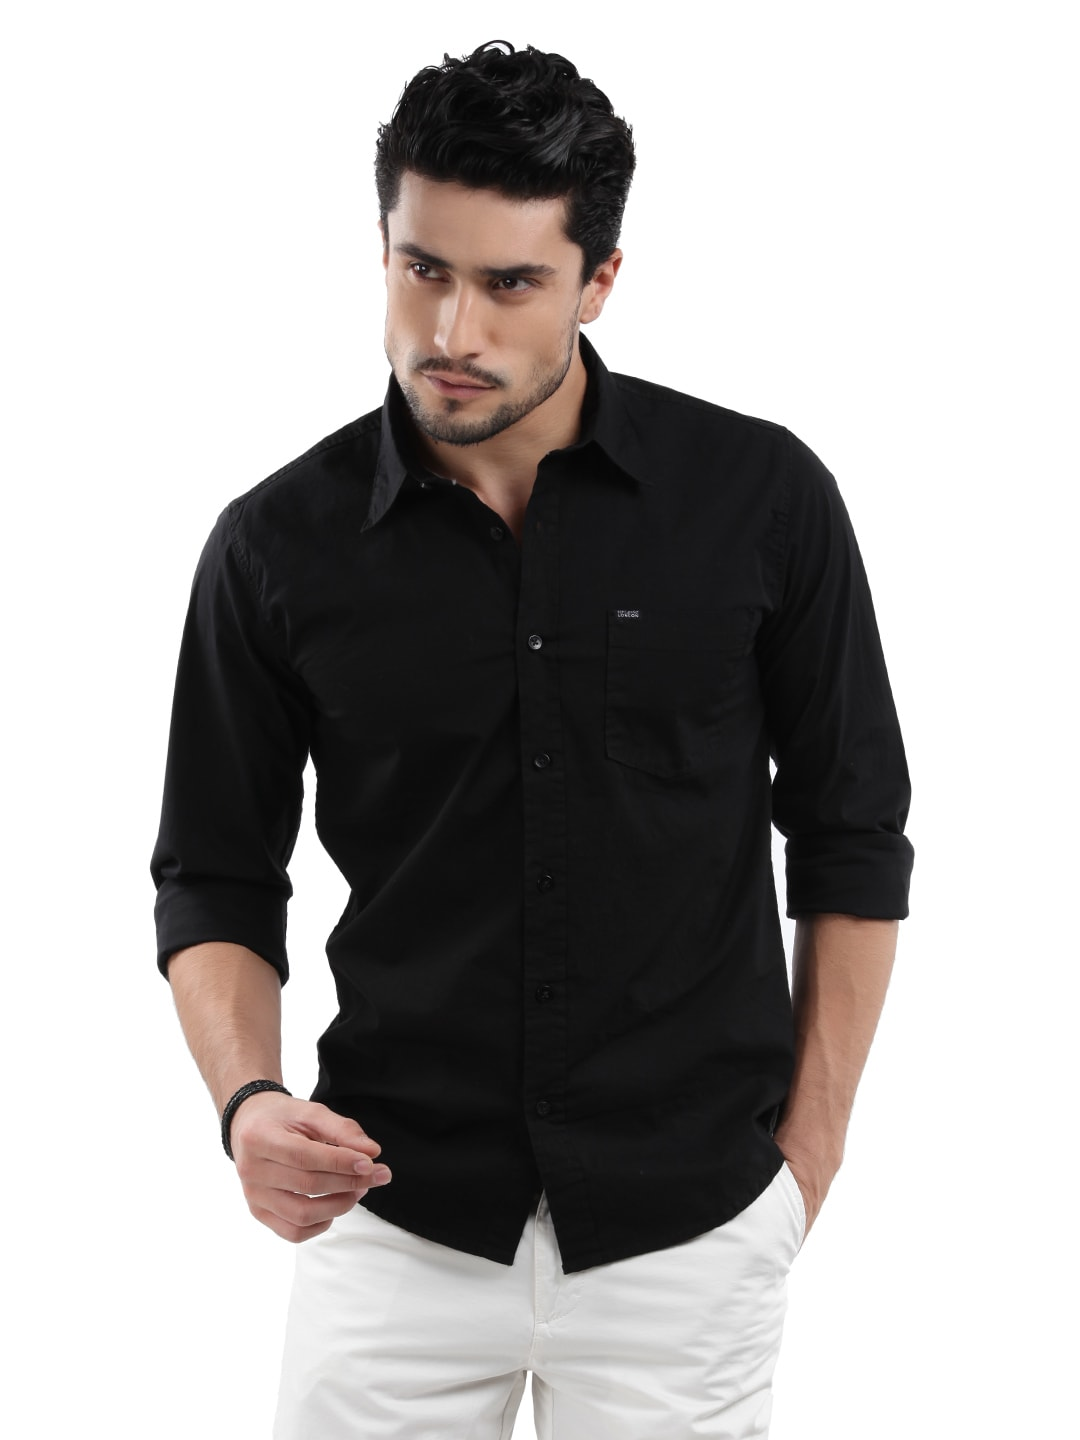 Buy pepe jeans men busker black shirt 320 apparel for for Shirts that go with black jeans